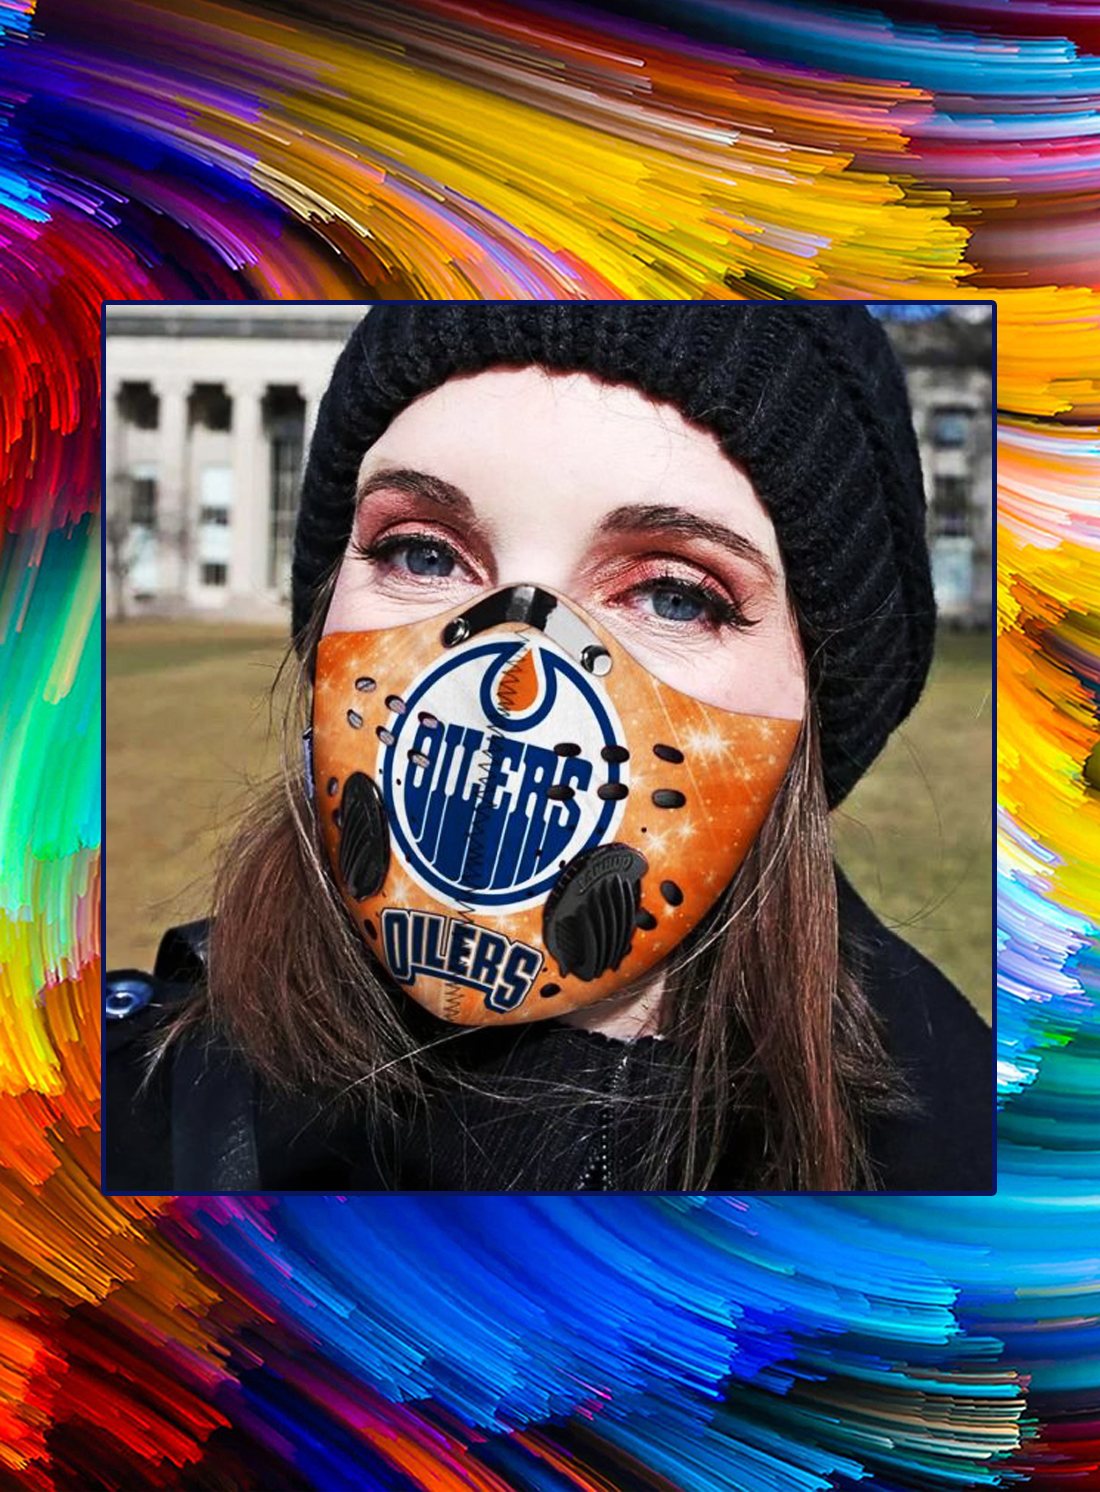 Edmonton olers filter face mask - Picture 1